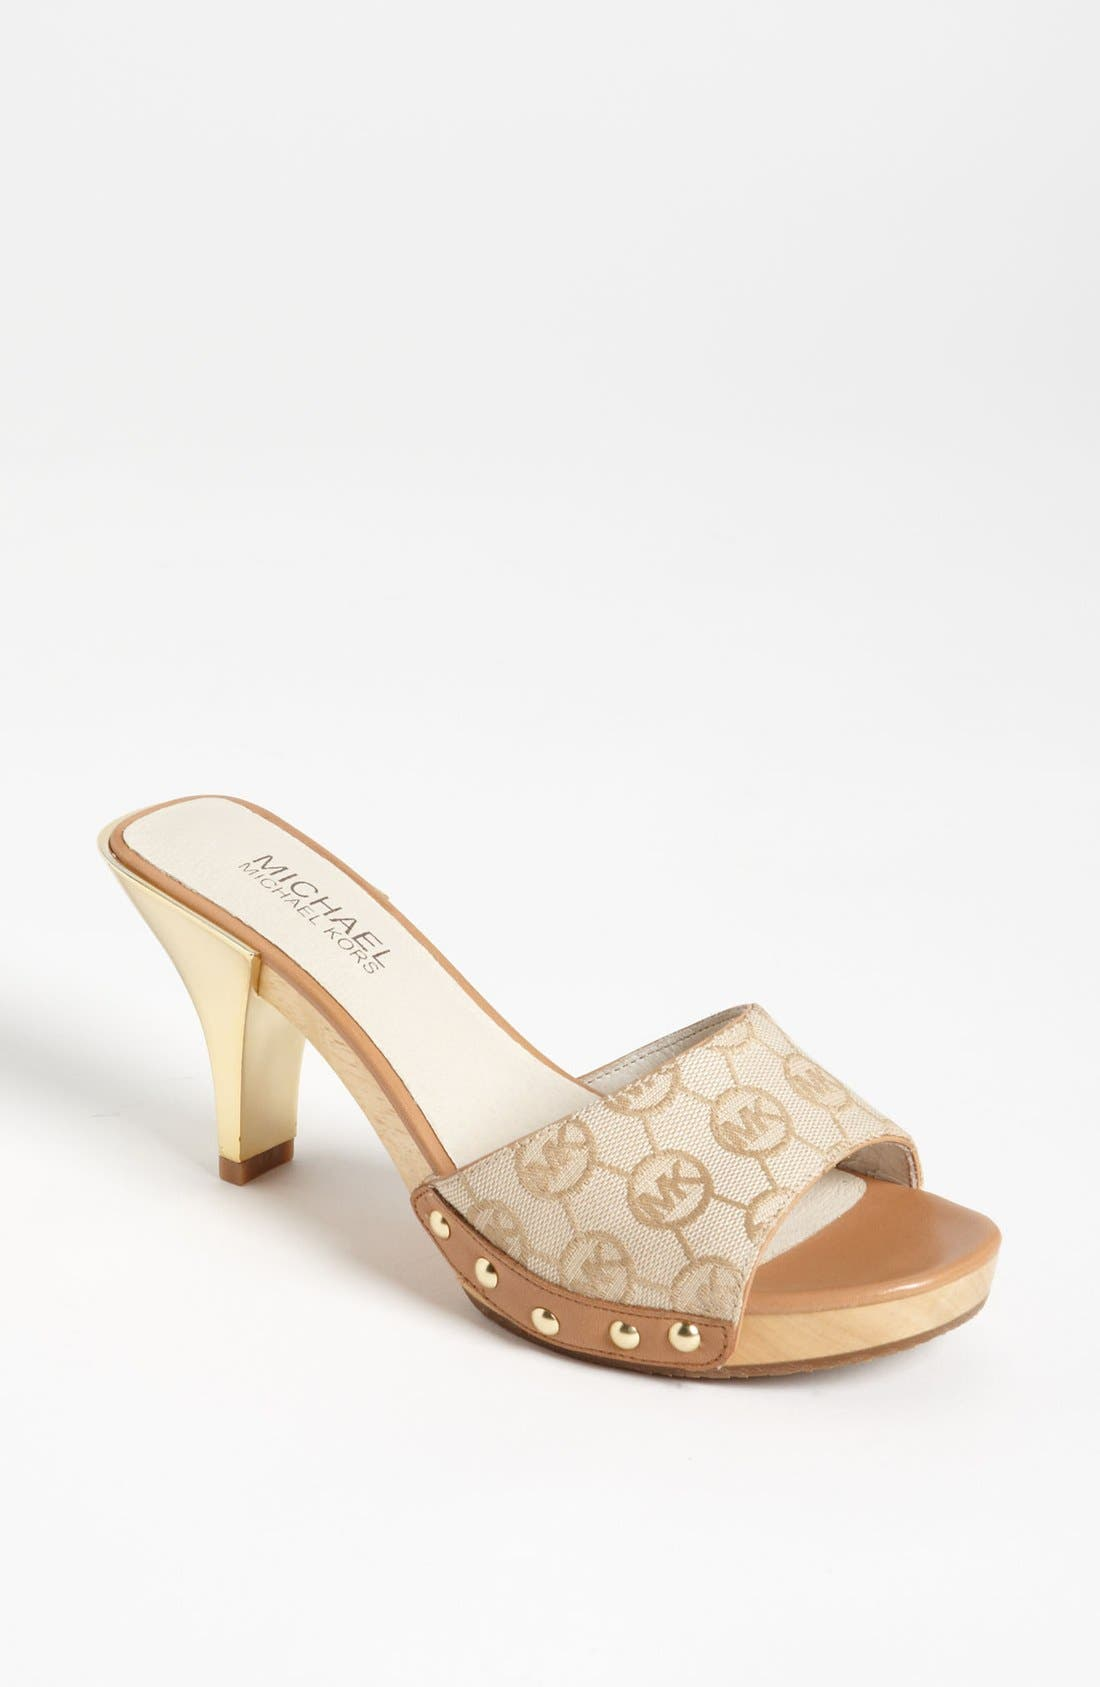 Alternate Image 1 Selected - MICHAEL Michael Kors 'Breton' Sandal